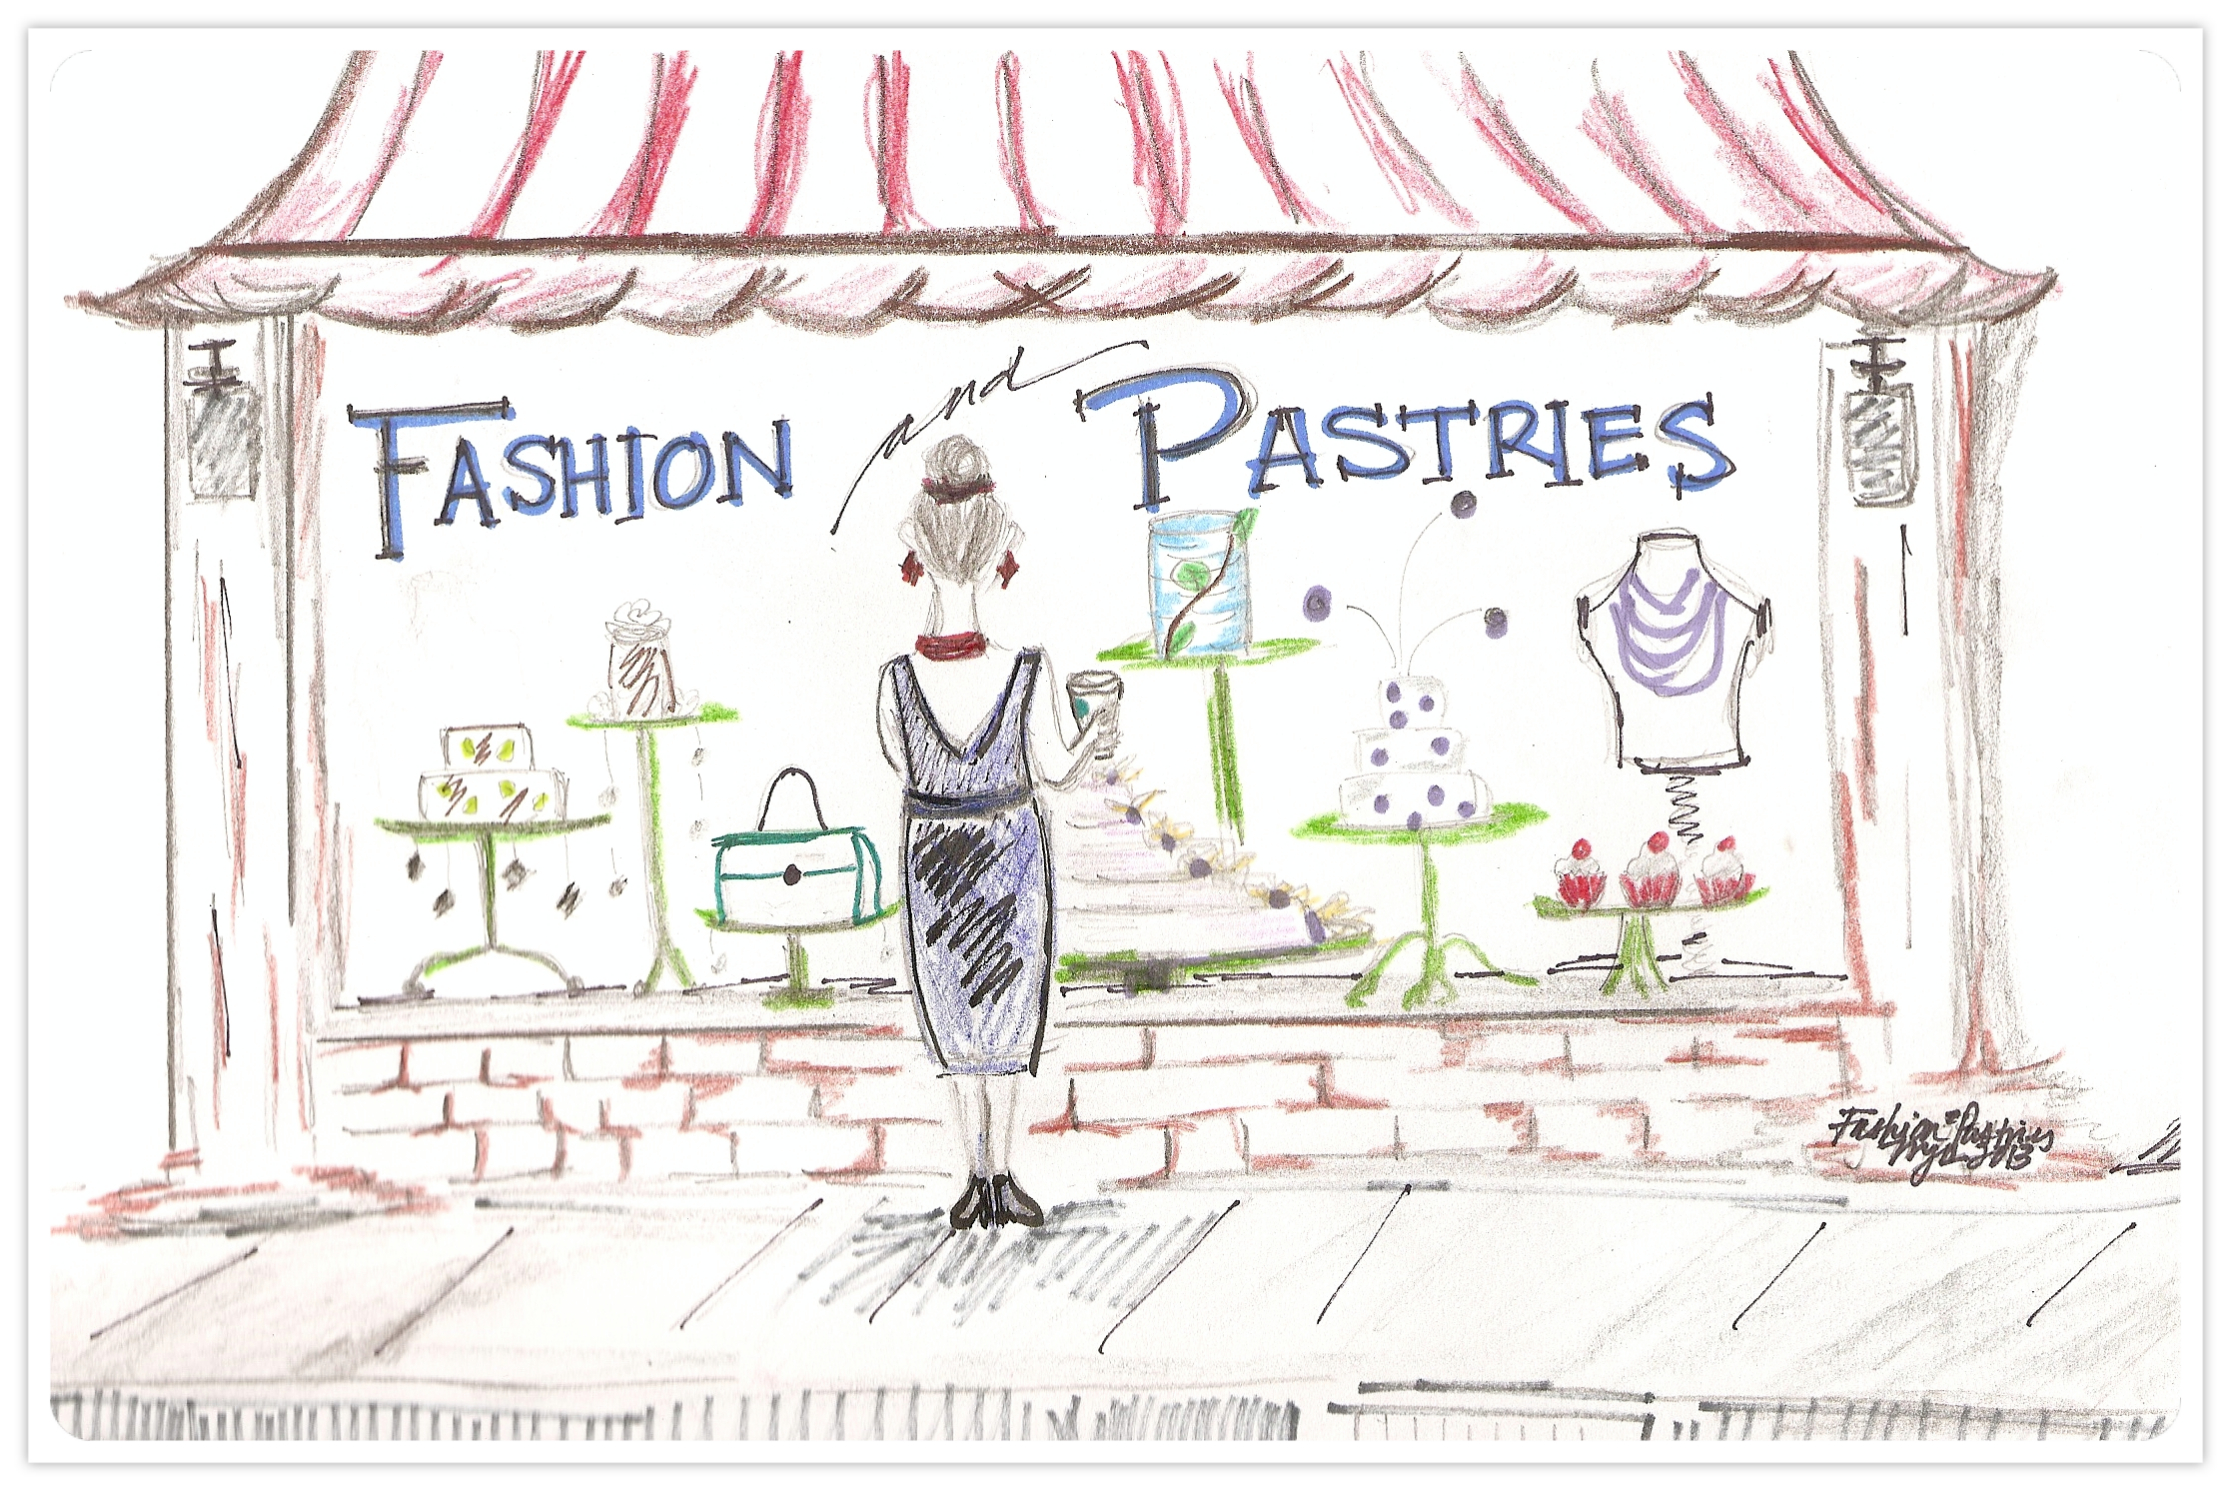 Fashion and Pastries